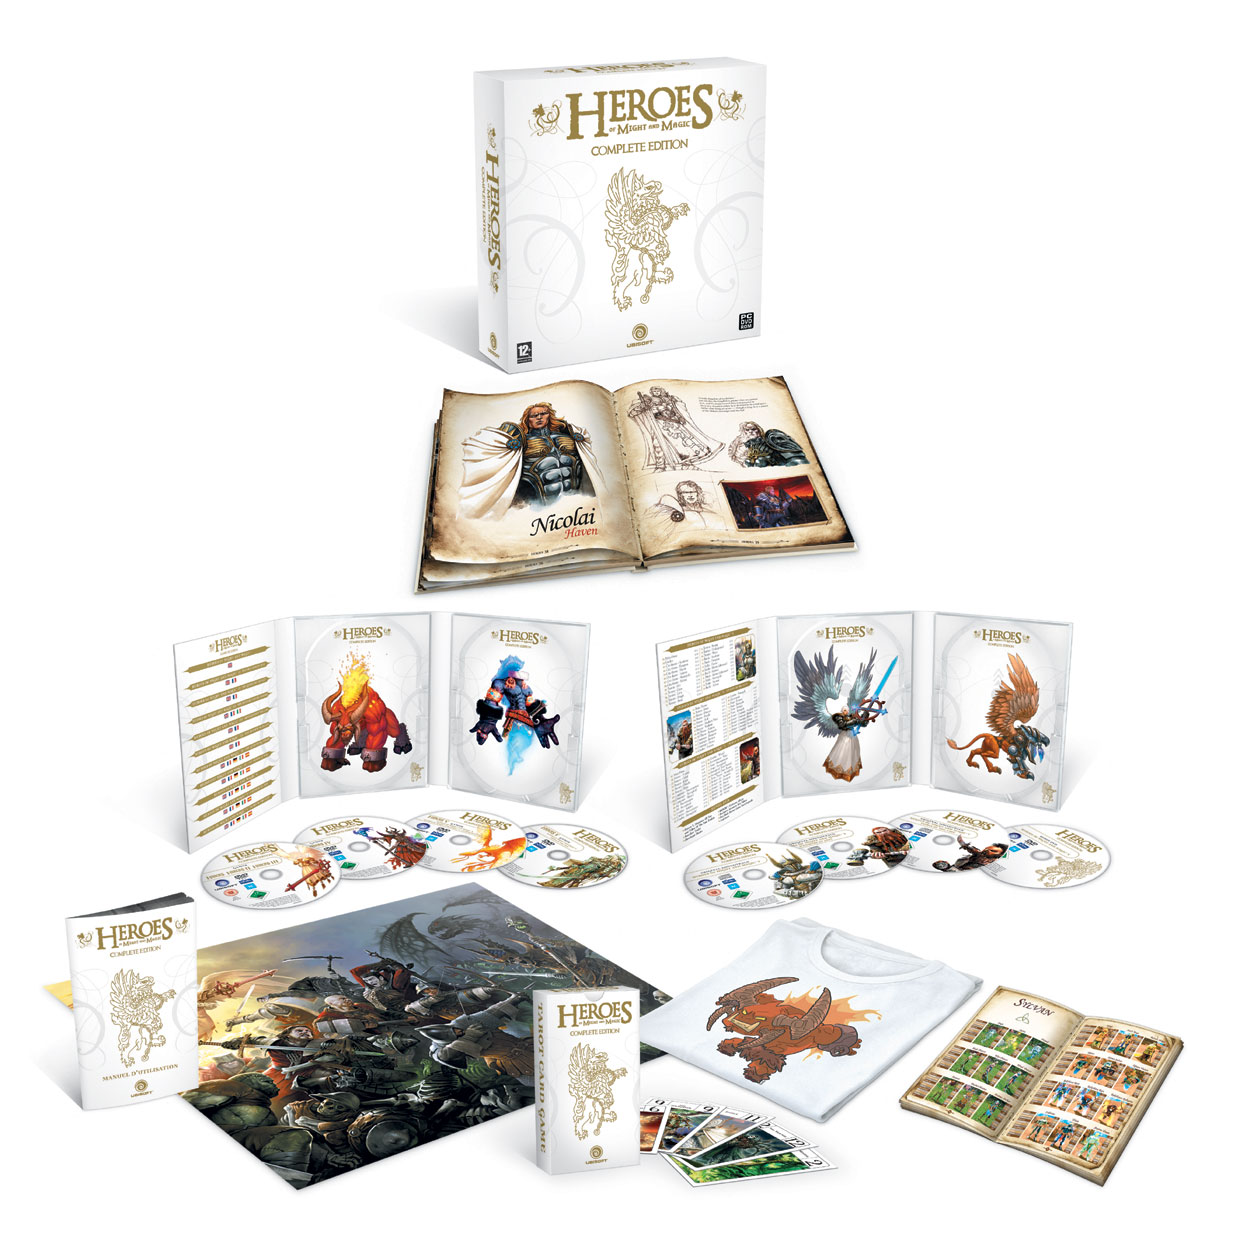 Heroes of Might and Magic : Complete Edition